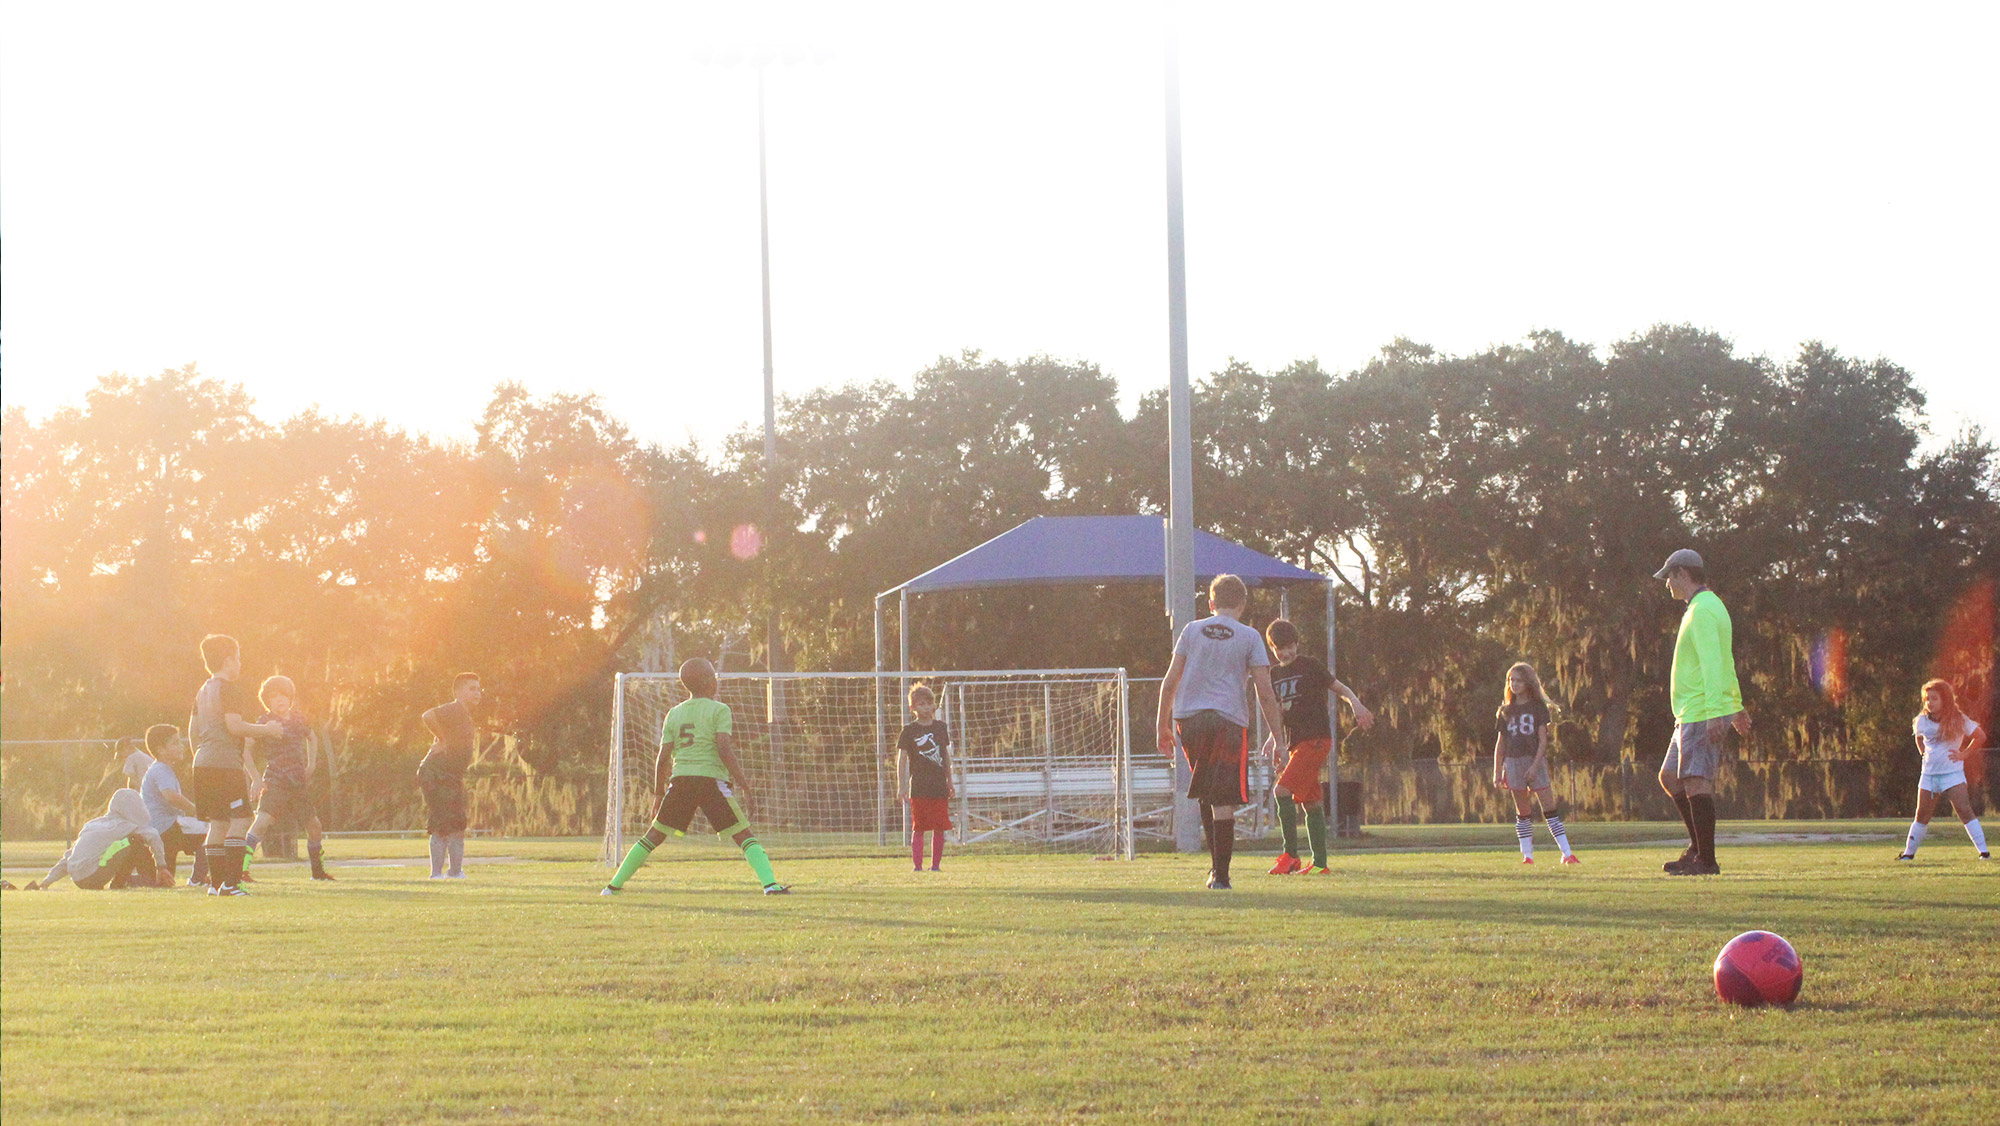 Youth soccer players warm up in St. Petersburg, Florida